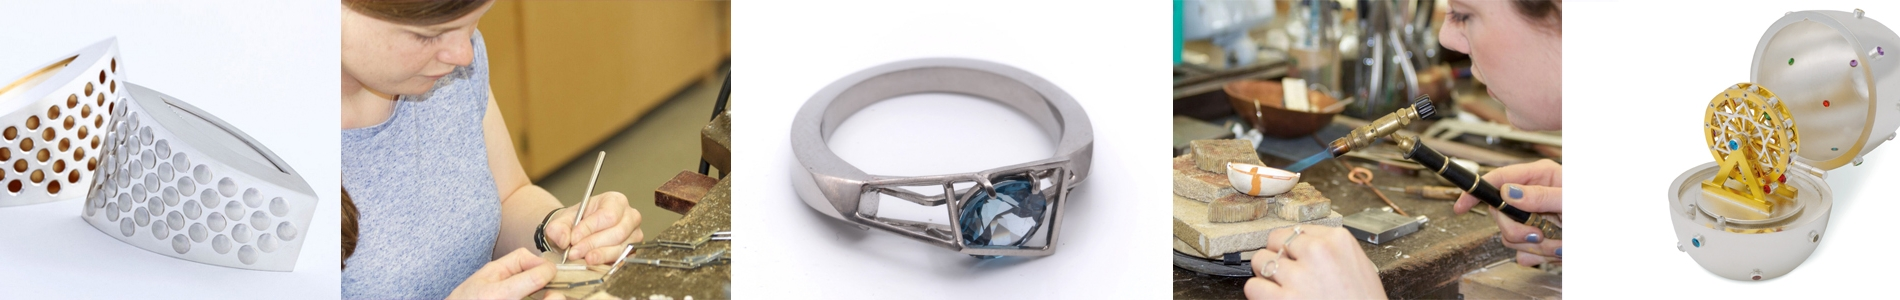 Jewellery and Goldsmithing Skills & Design Course